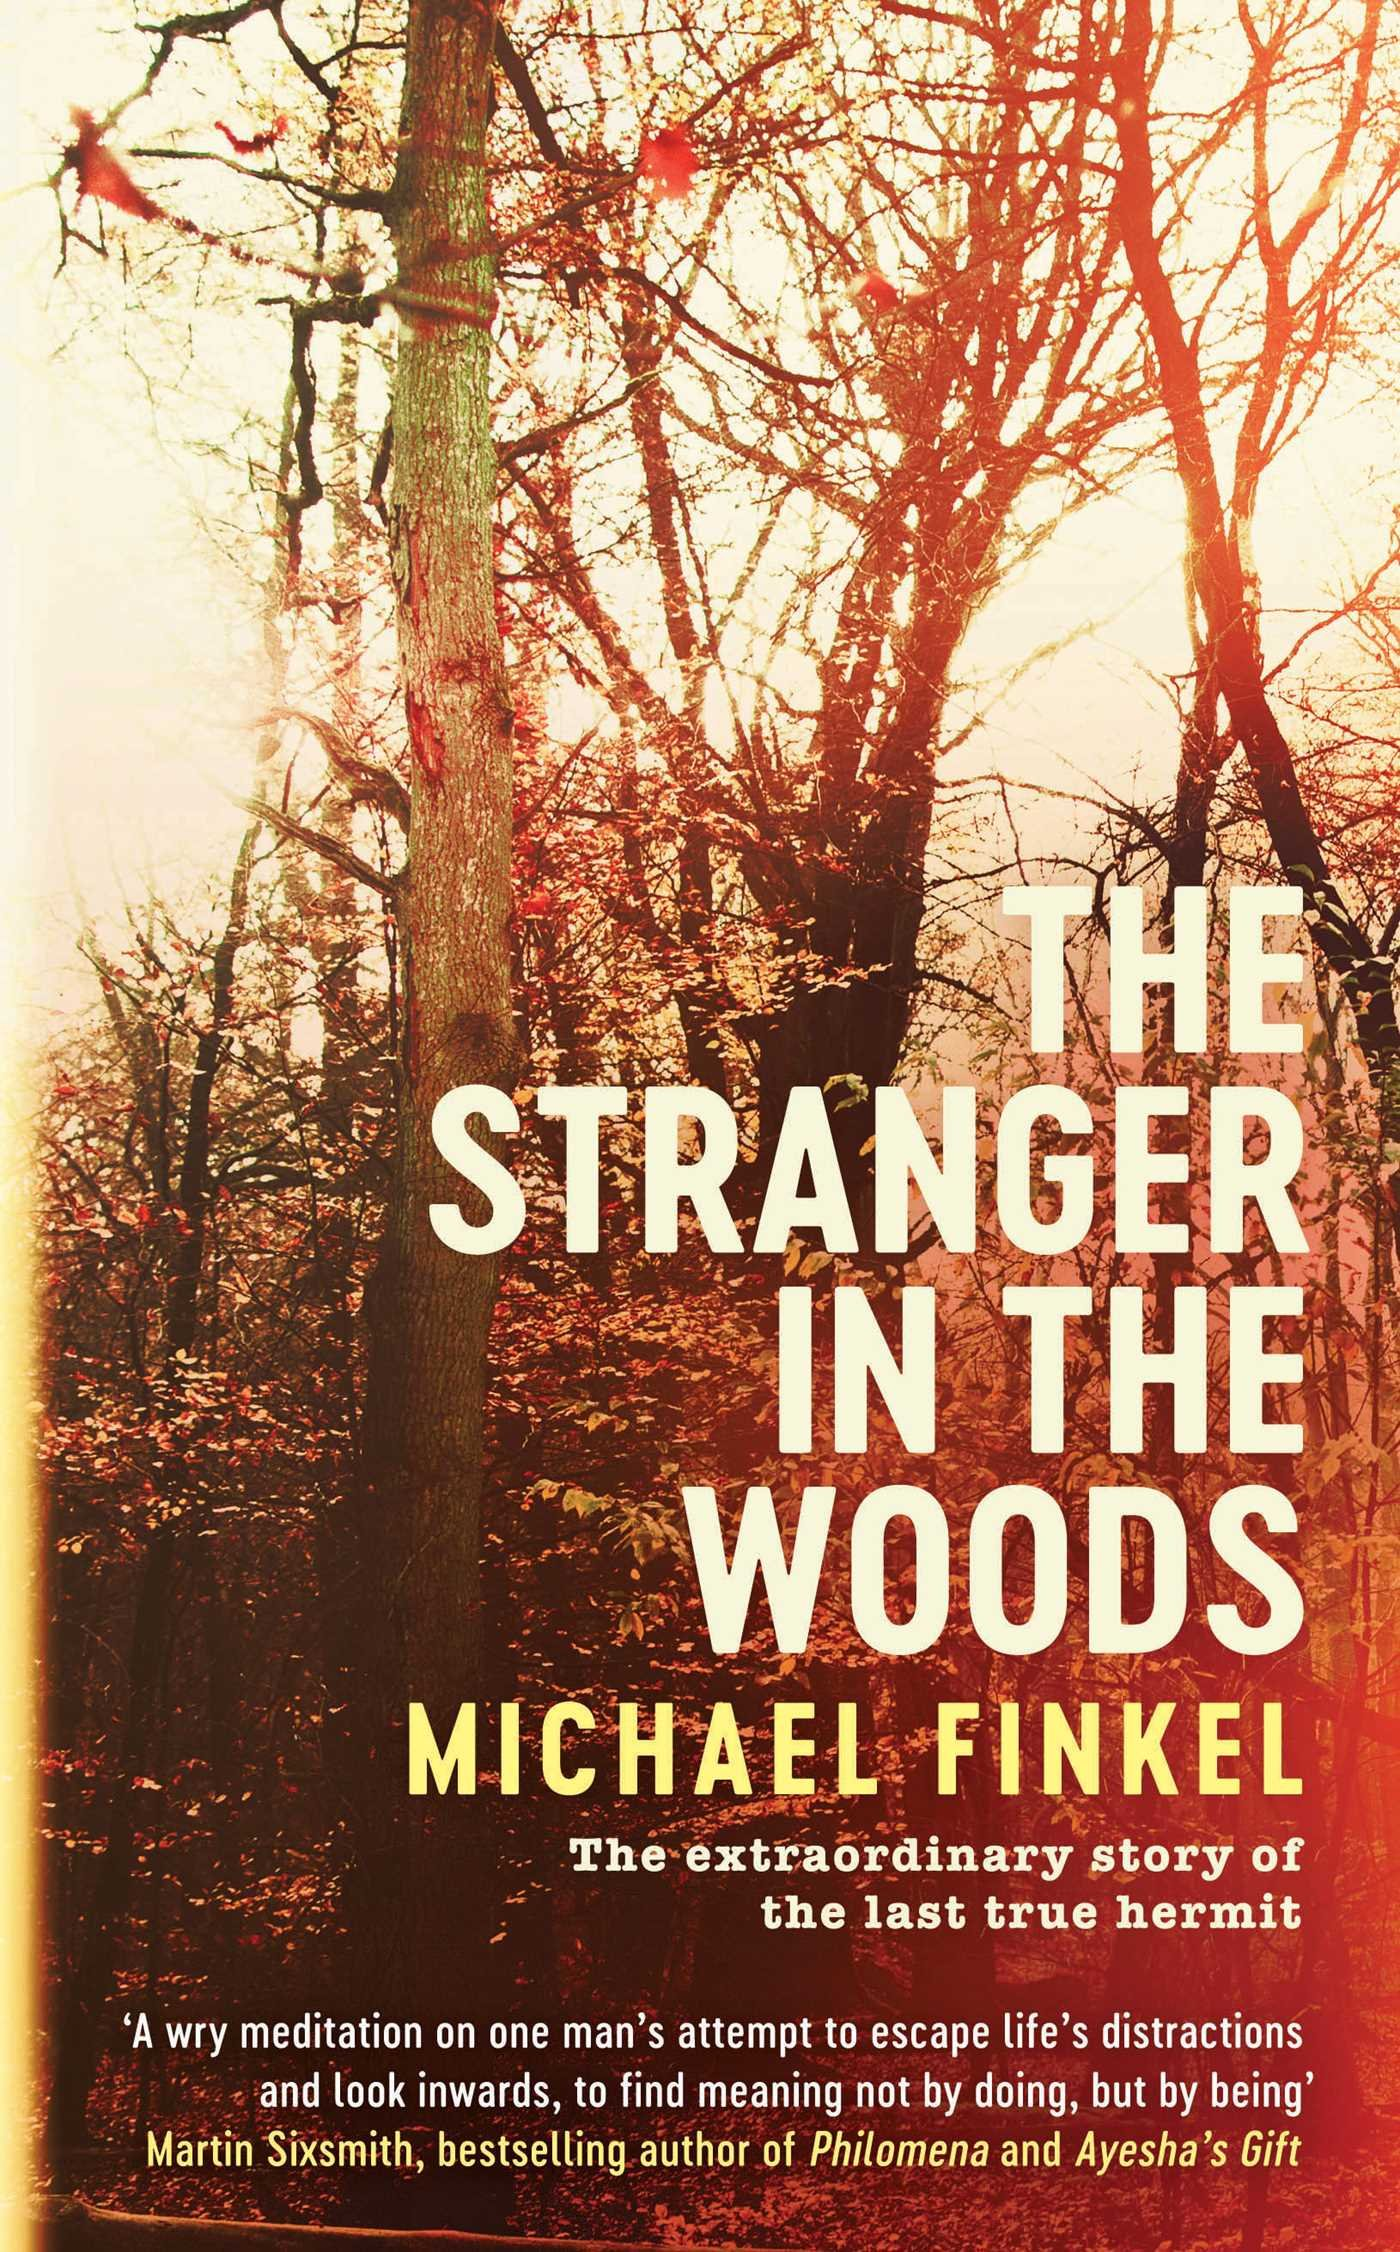 The Stranger In The Woods The Extraordinary Story Of The Last True Hermit By Michael Finkel